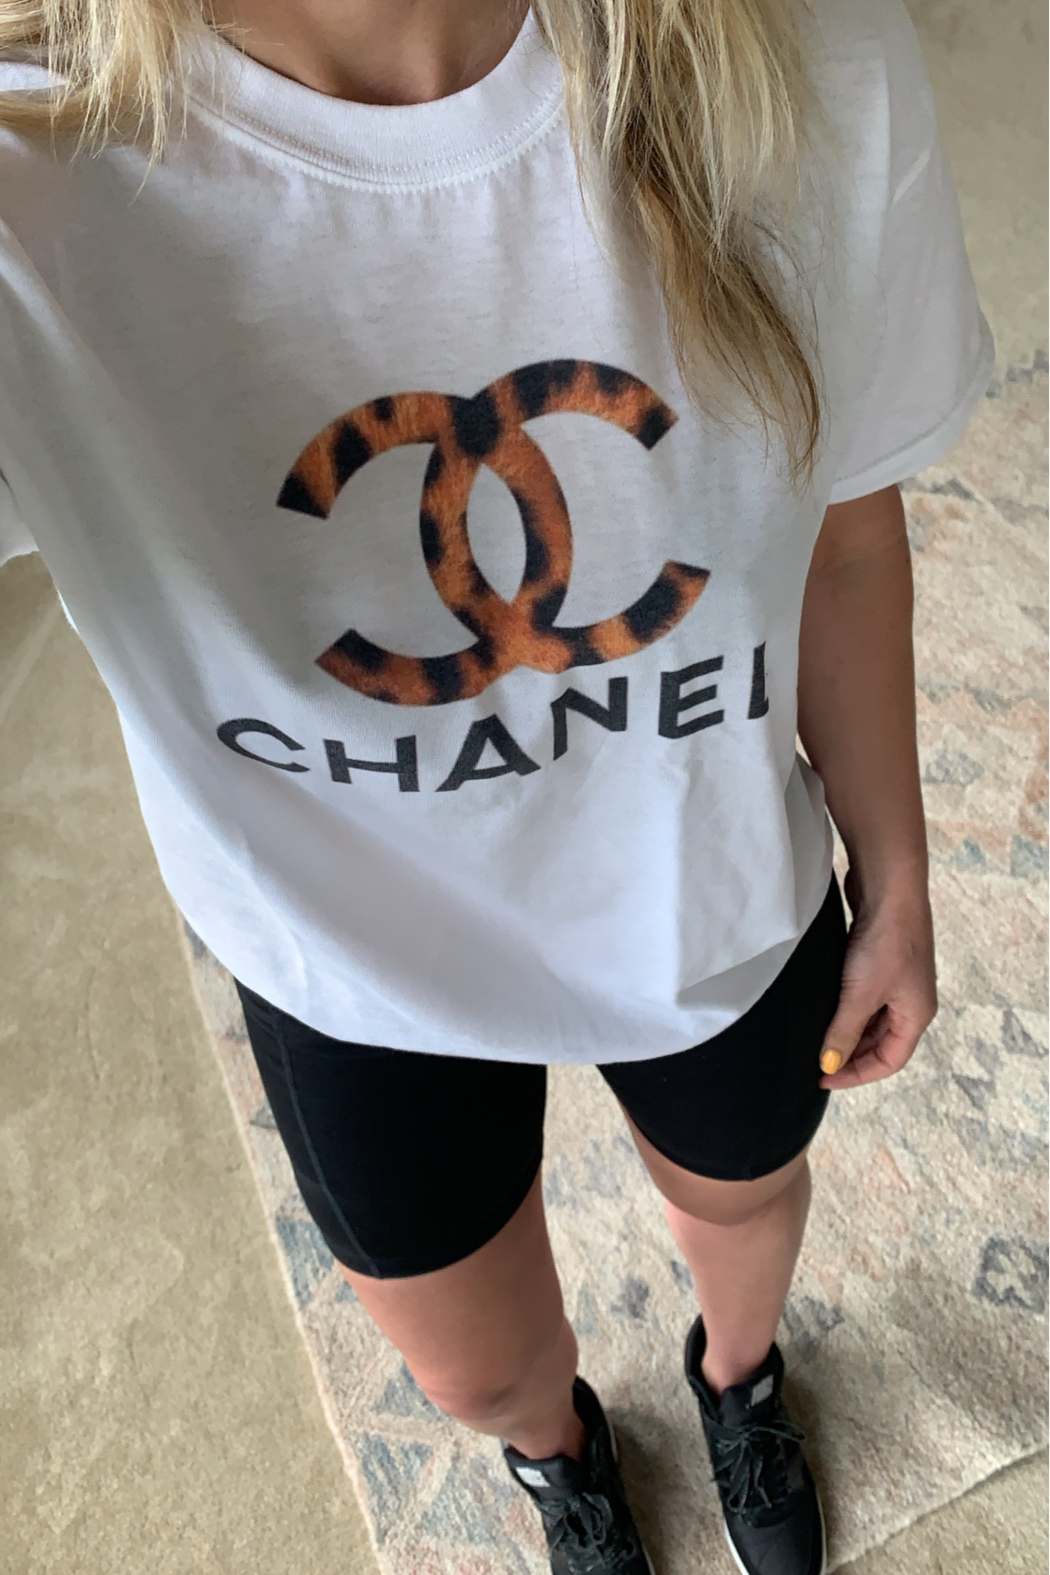 Fitwear Wild for chanel - Main Image